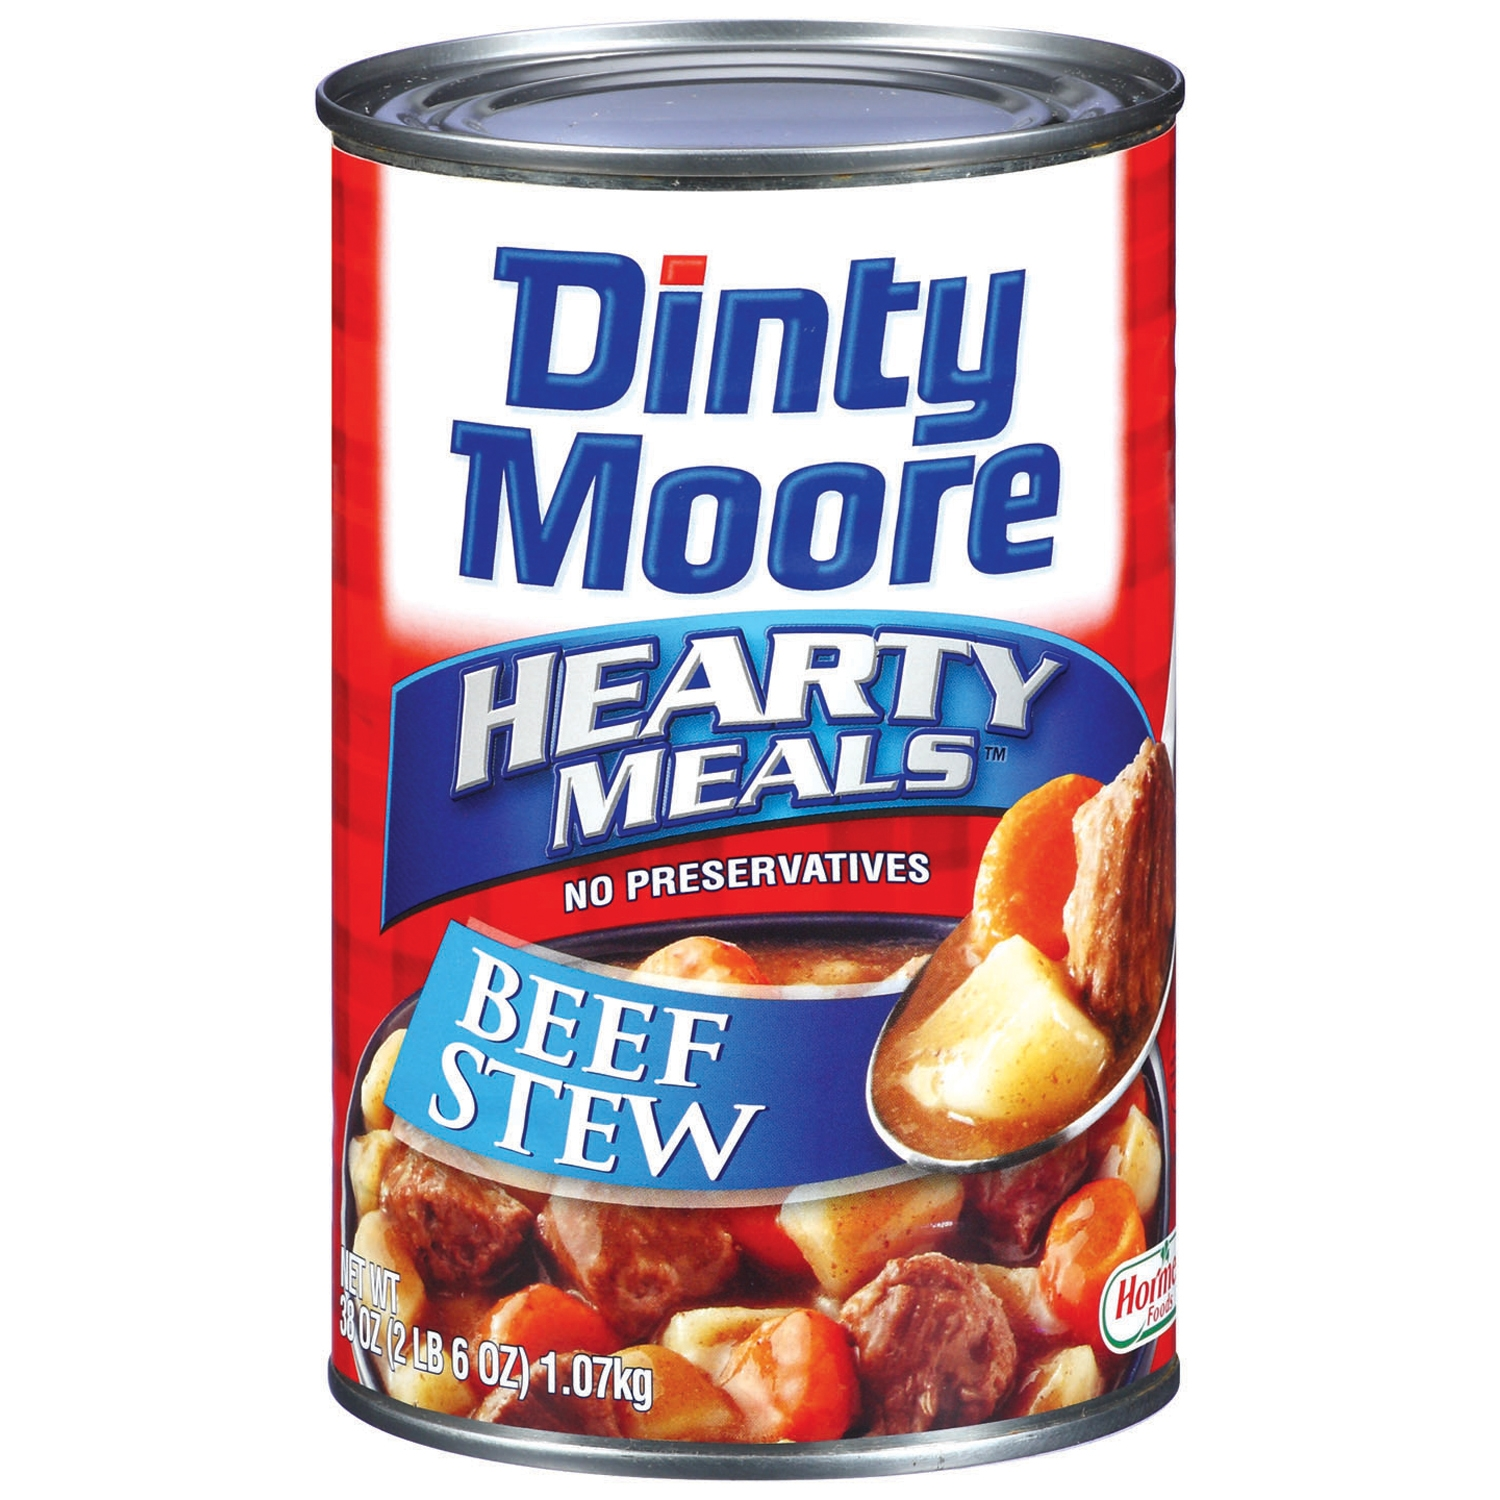 Dinty Moore Beef Stew, 38 oz by Hormel Foods Corp. Grocery